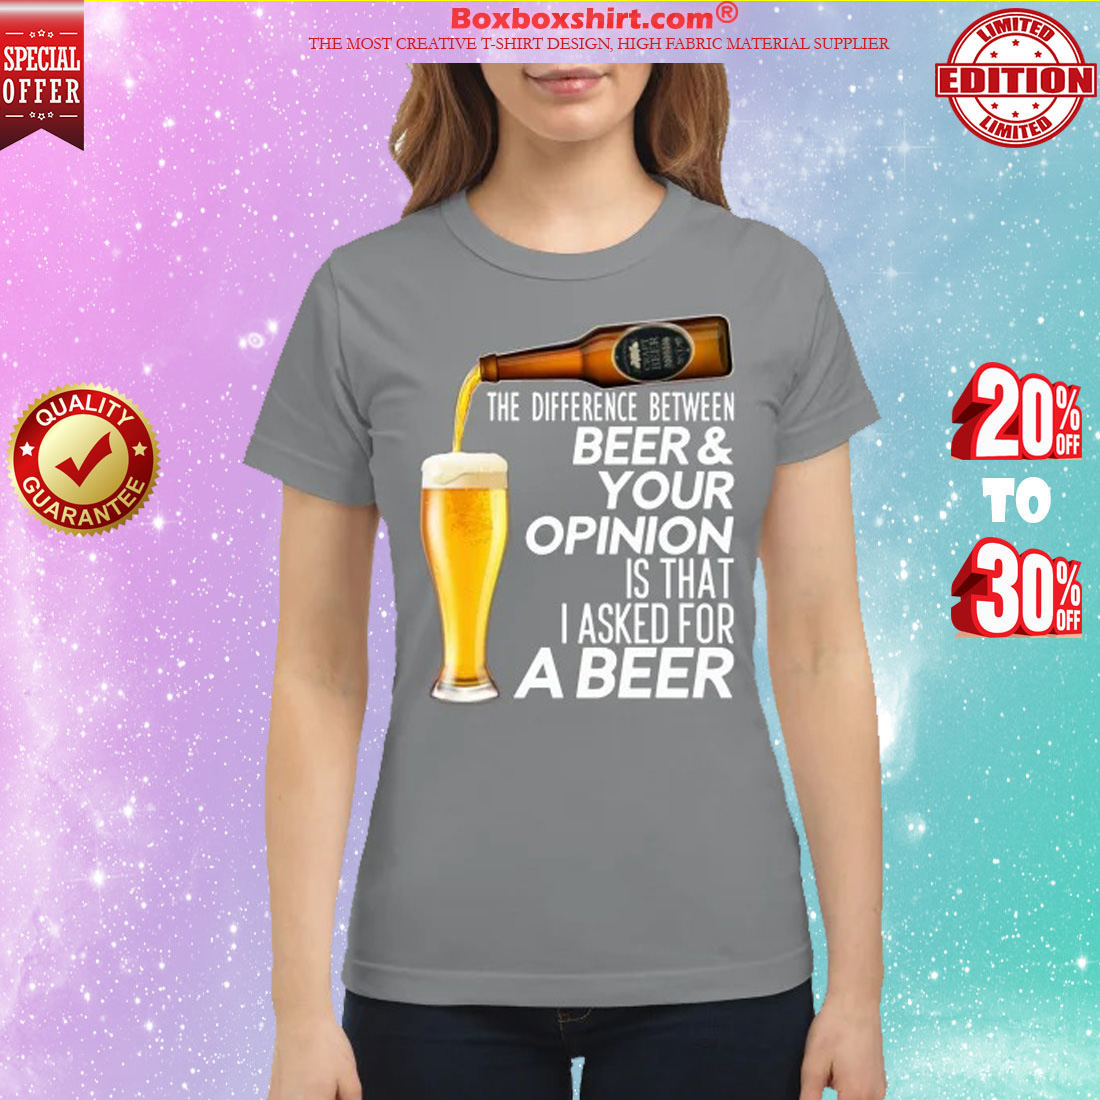 The difference between beer your opinion is that I asked for a beer t classic shirt